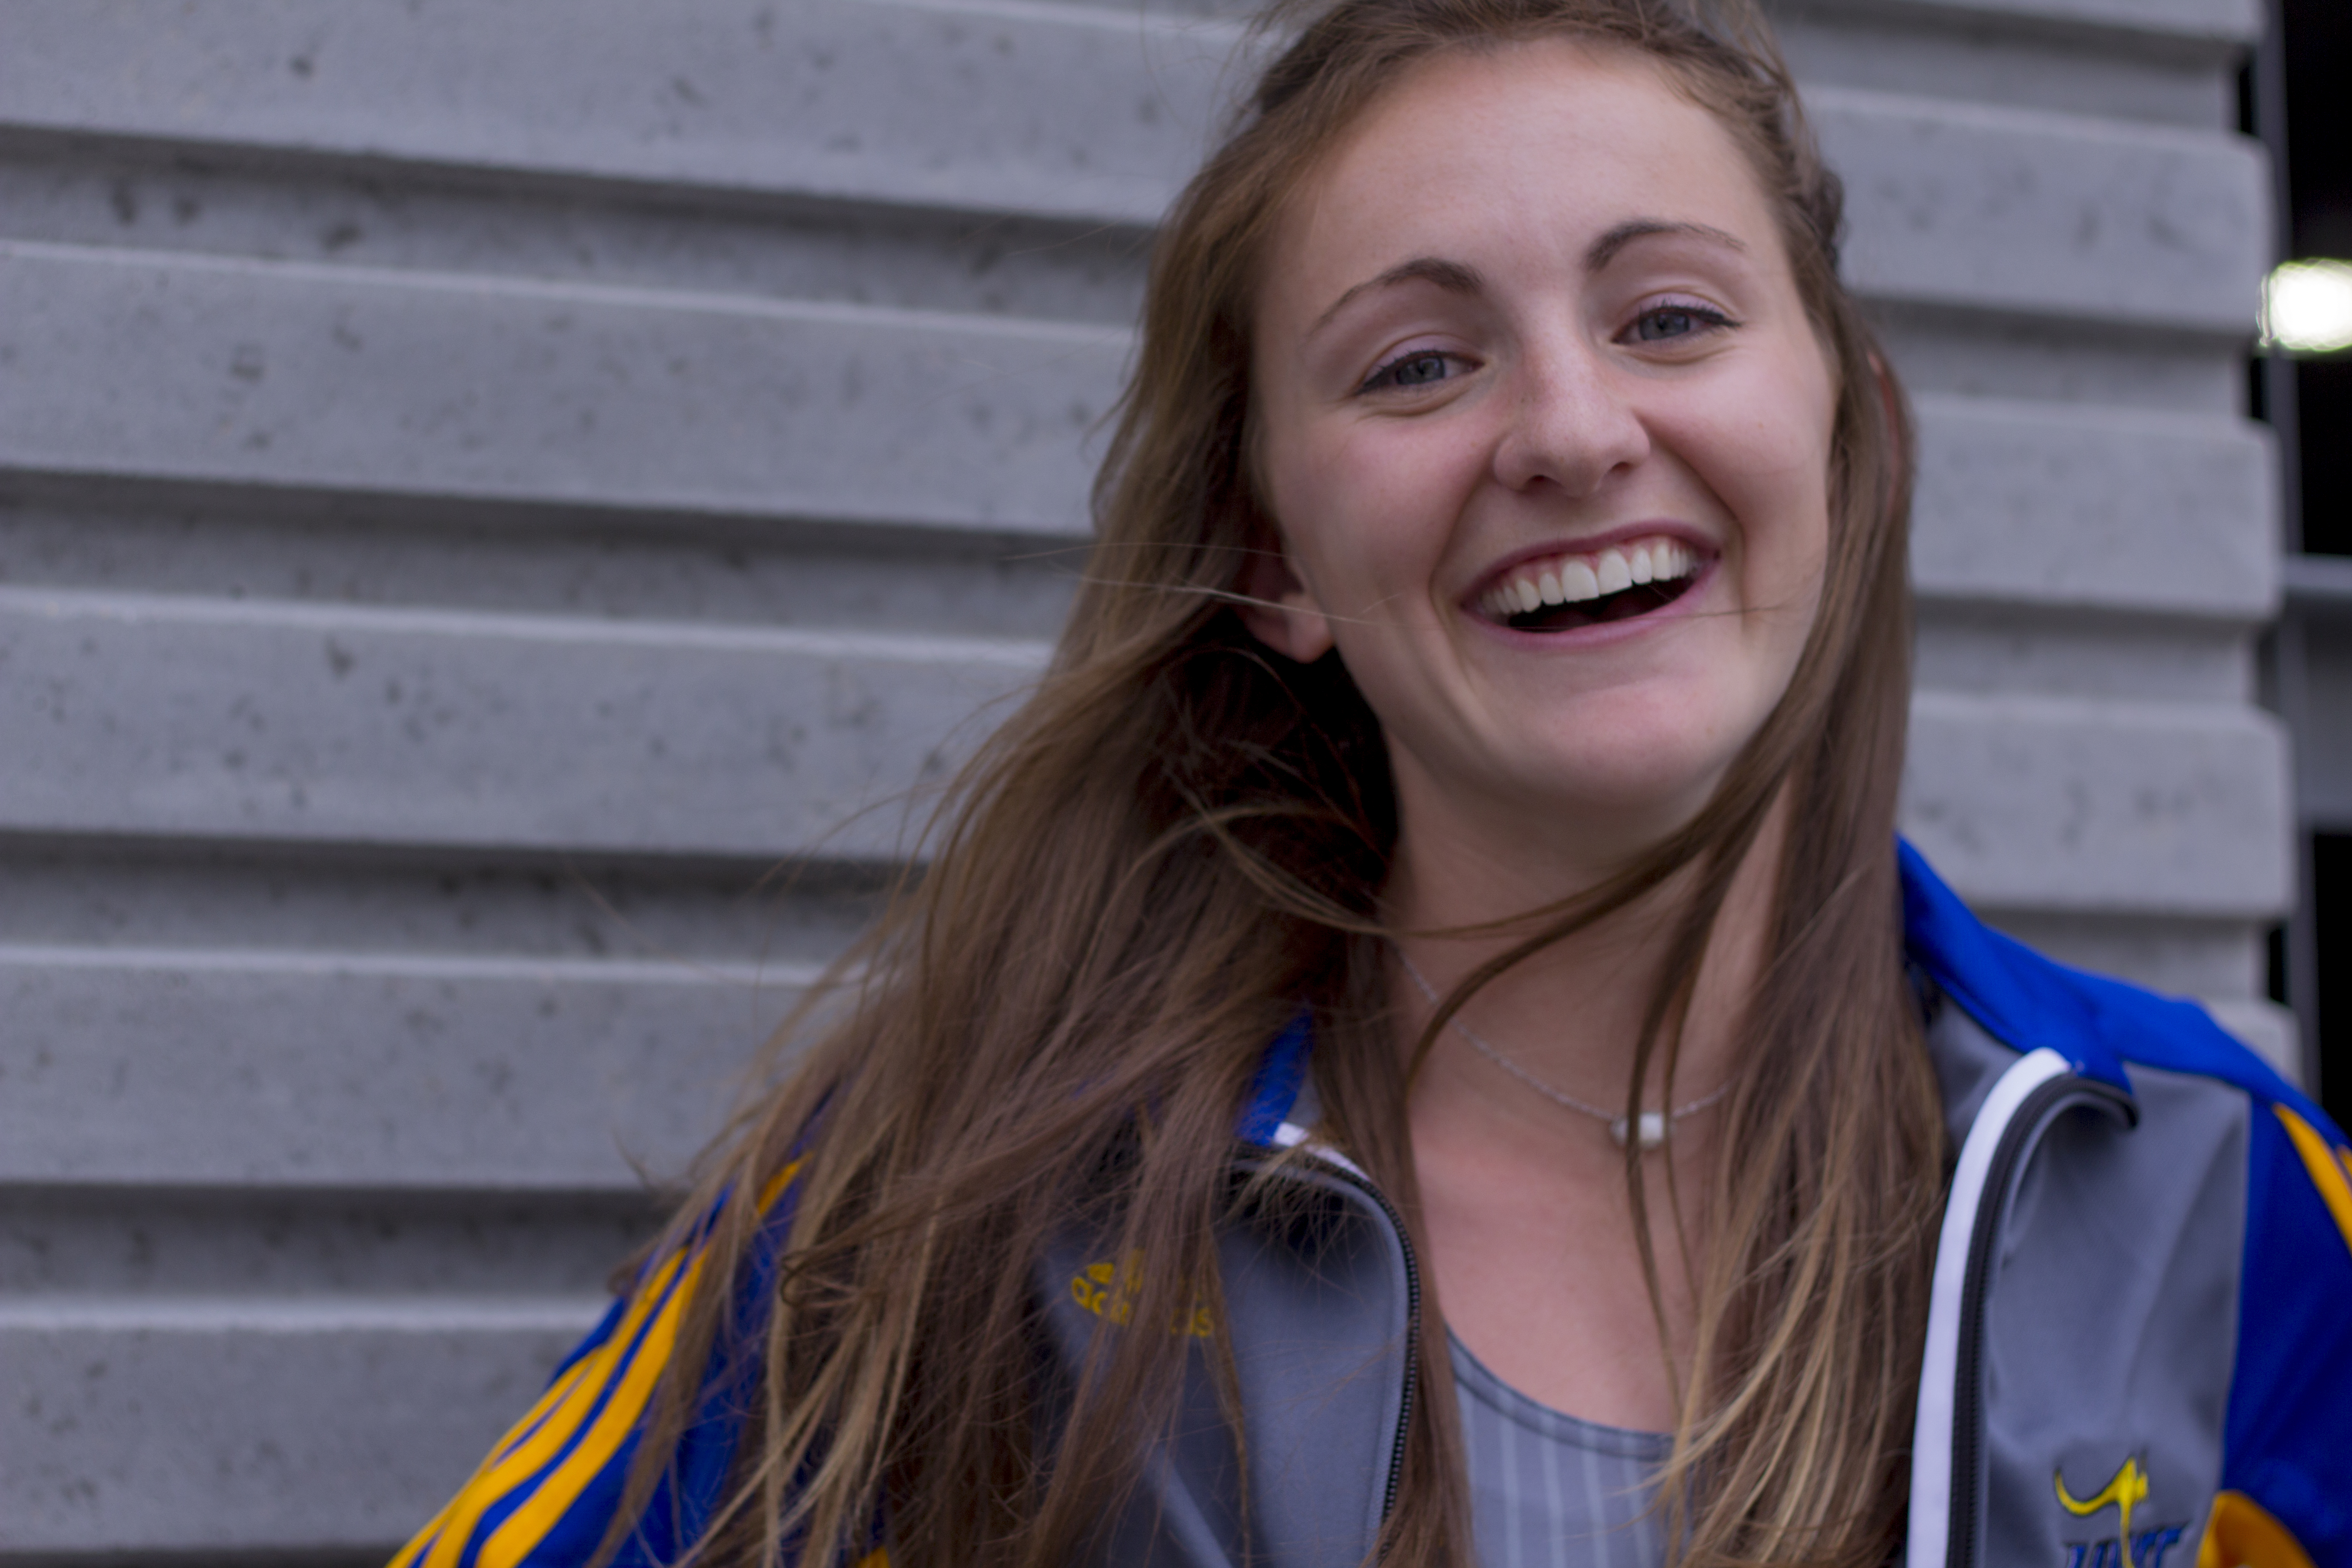 Brooke Guiot is an athlete at UMKC and studies psychology. She is also a REbel intern